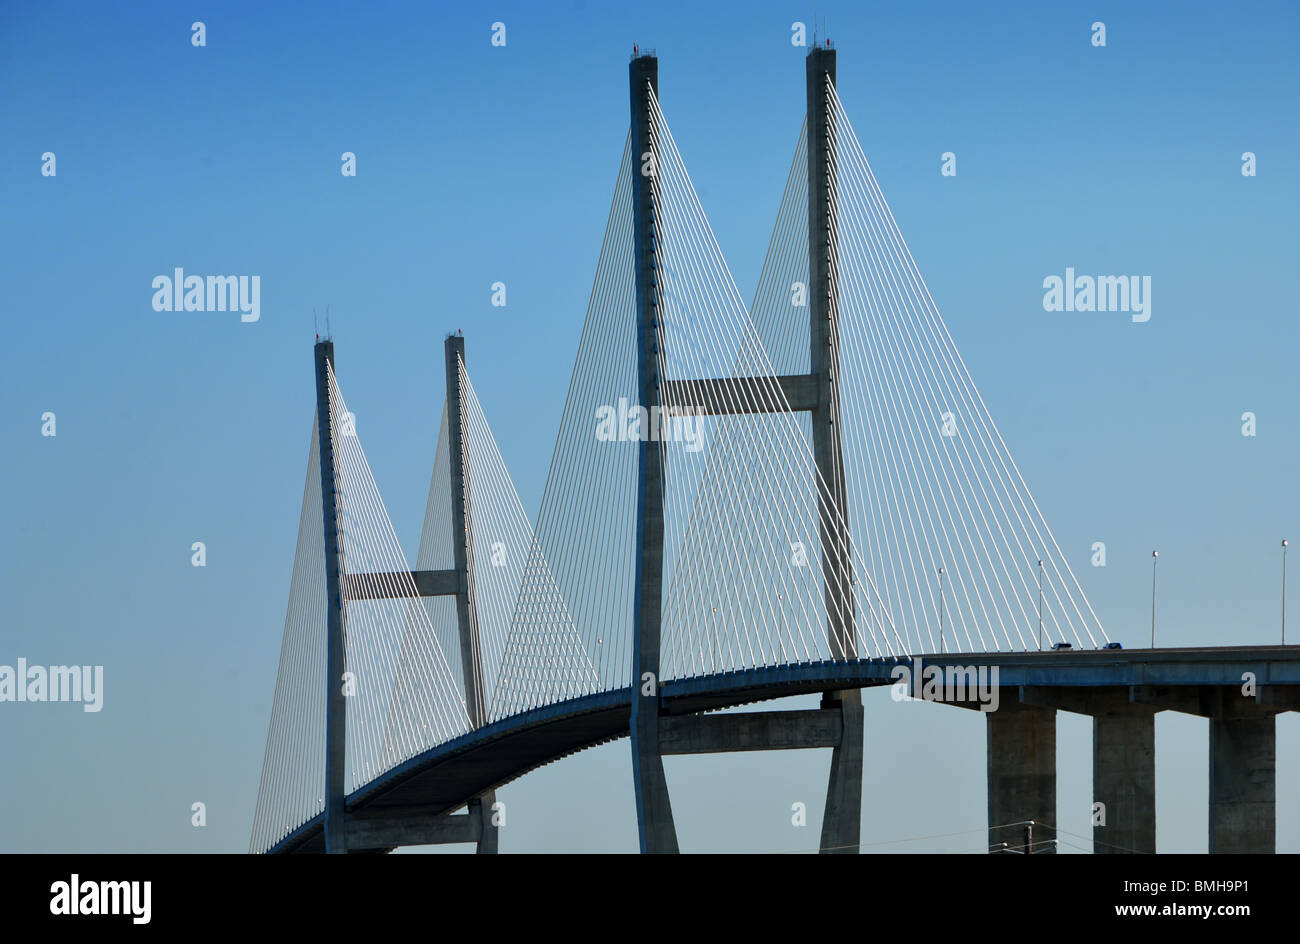 The Sidney Lanier Bridge is a cable-stayed bridge that spans the South Brunswick River in Brunswick, Georgia, United - Stock Image